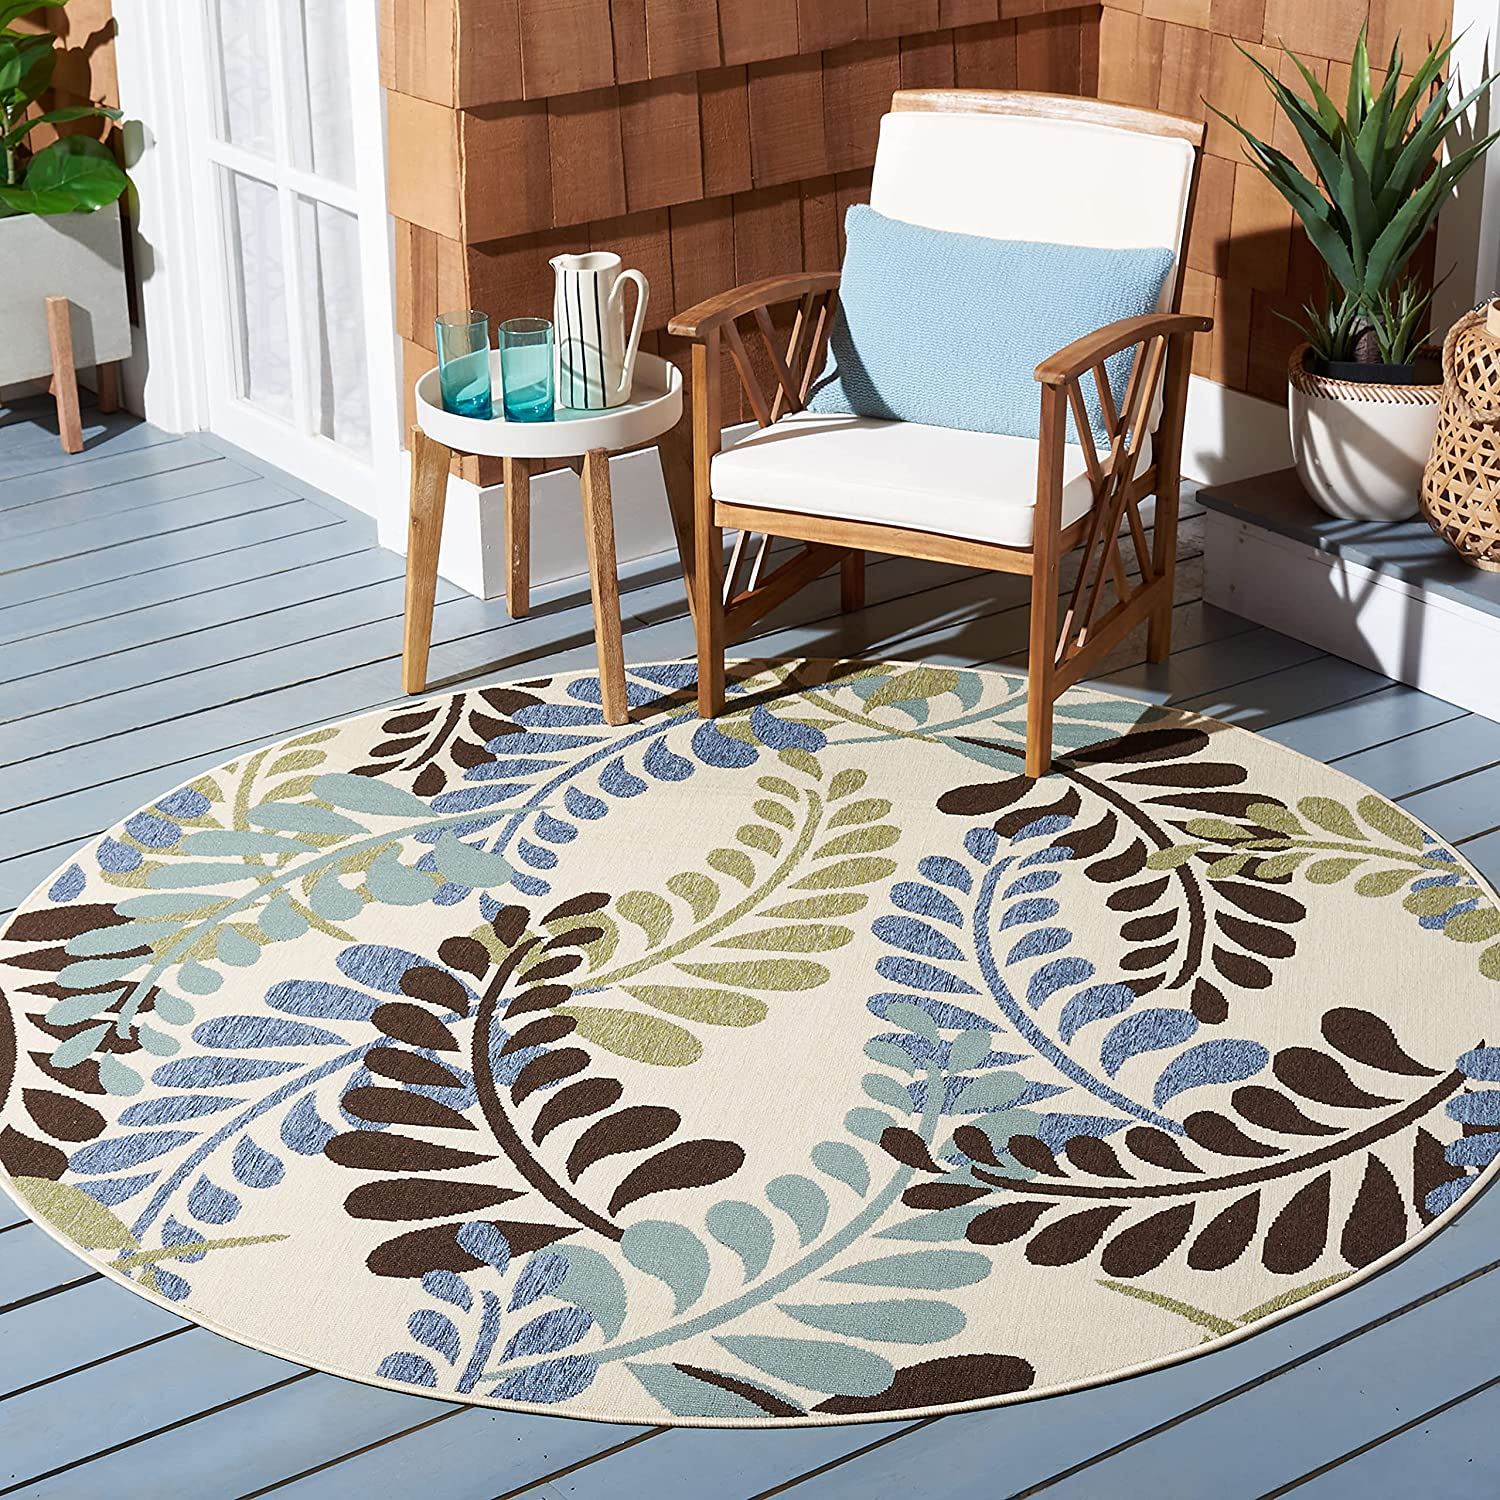 NEW before selling ☆ Safavieh Veranda Collection Mail order cheap VER056 Floral Outdoor Non-Sh Indoor